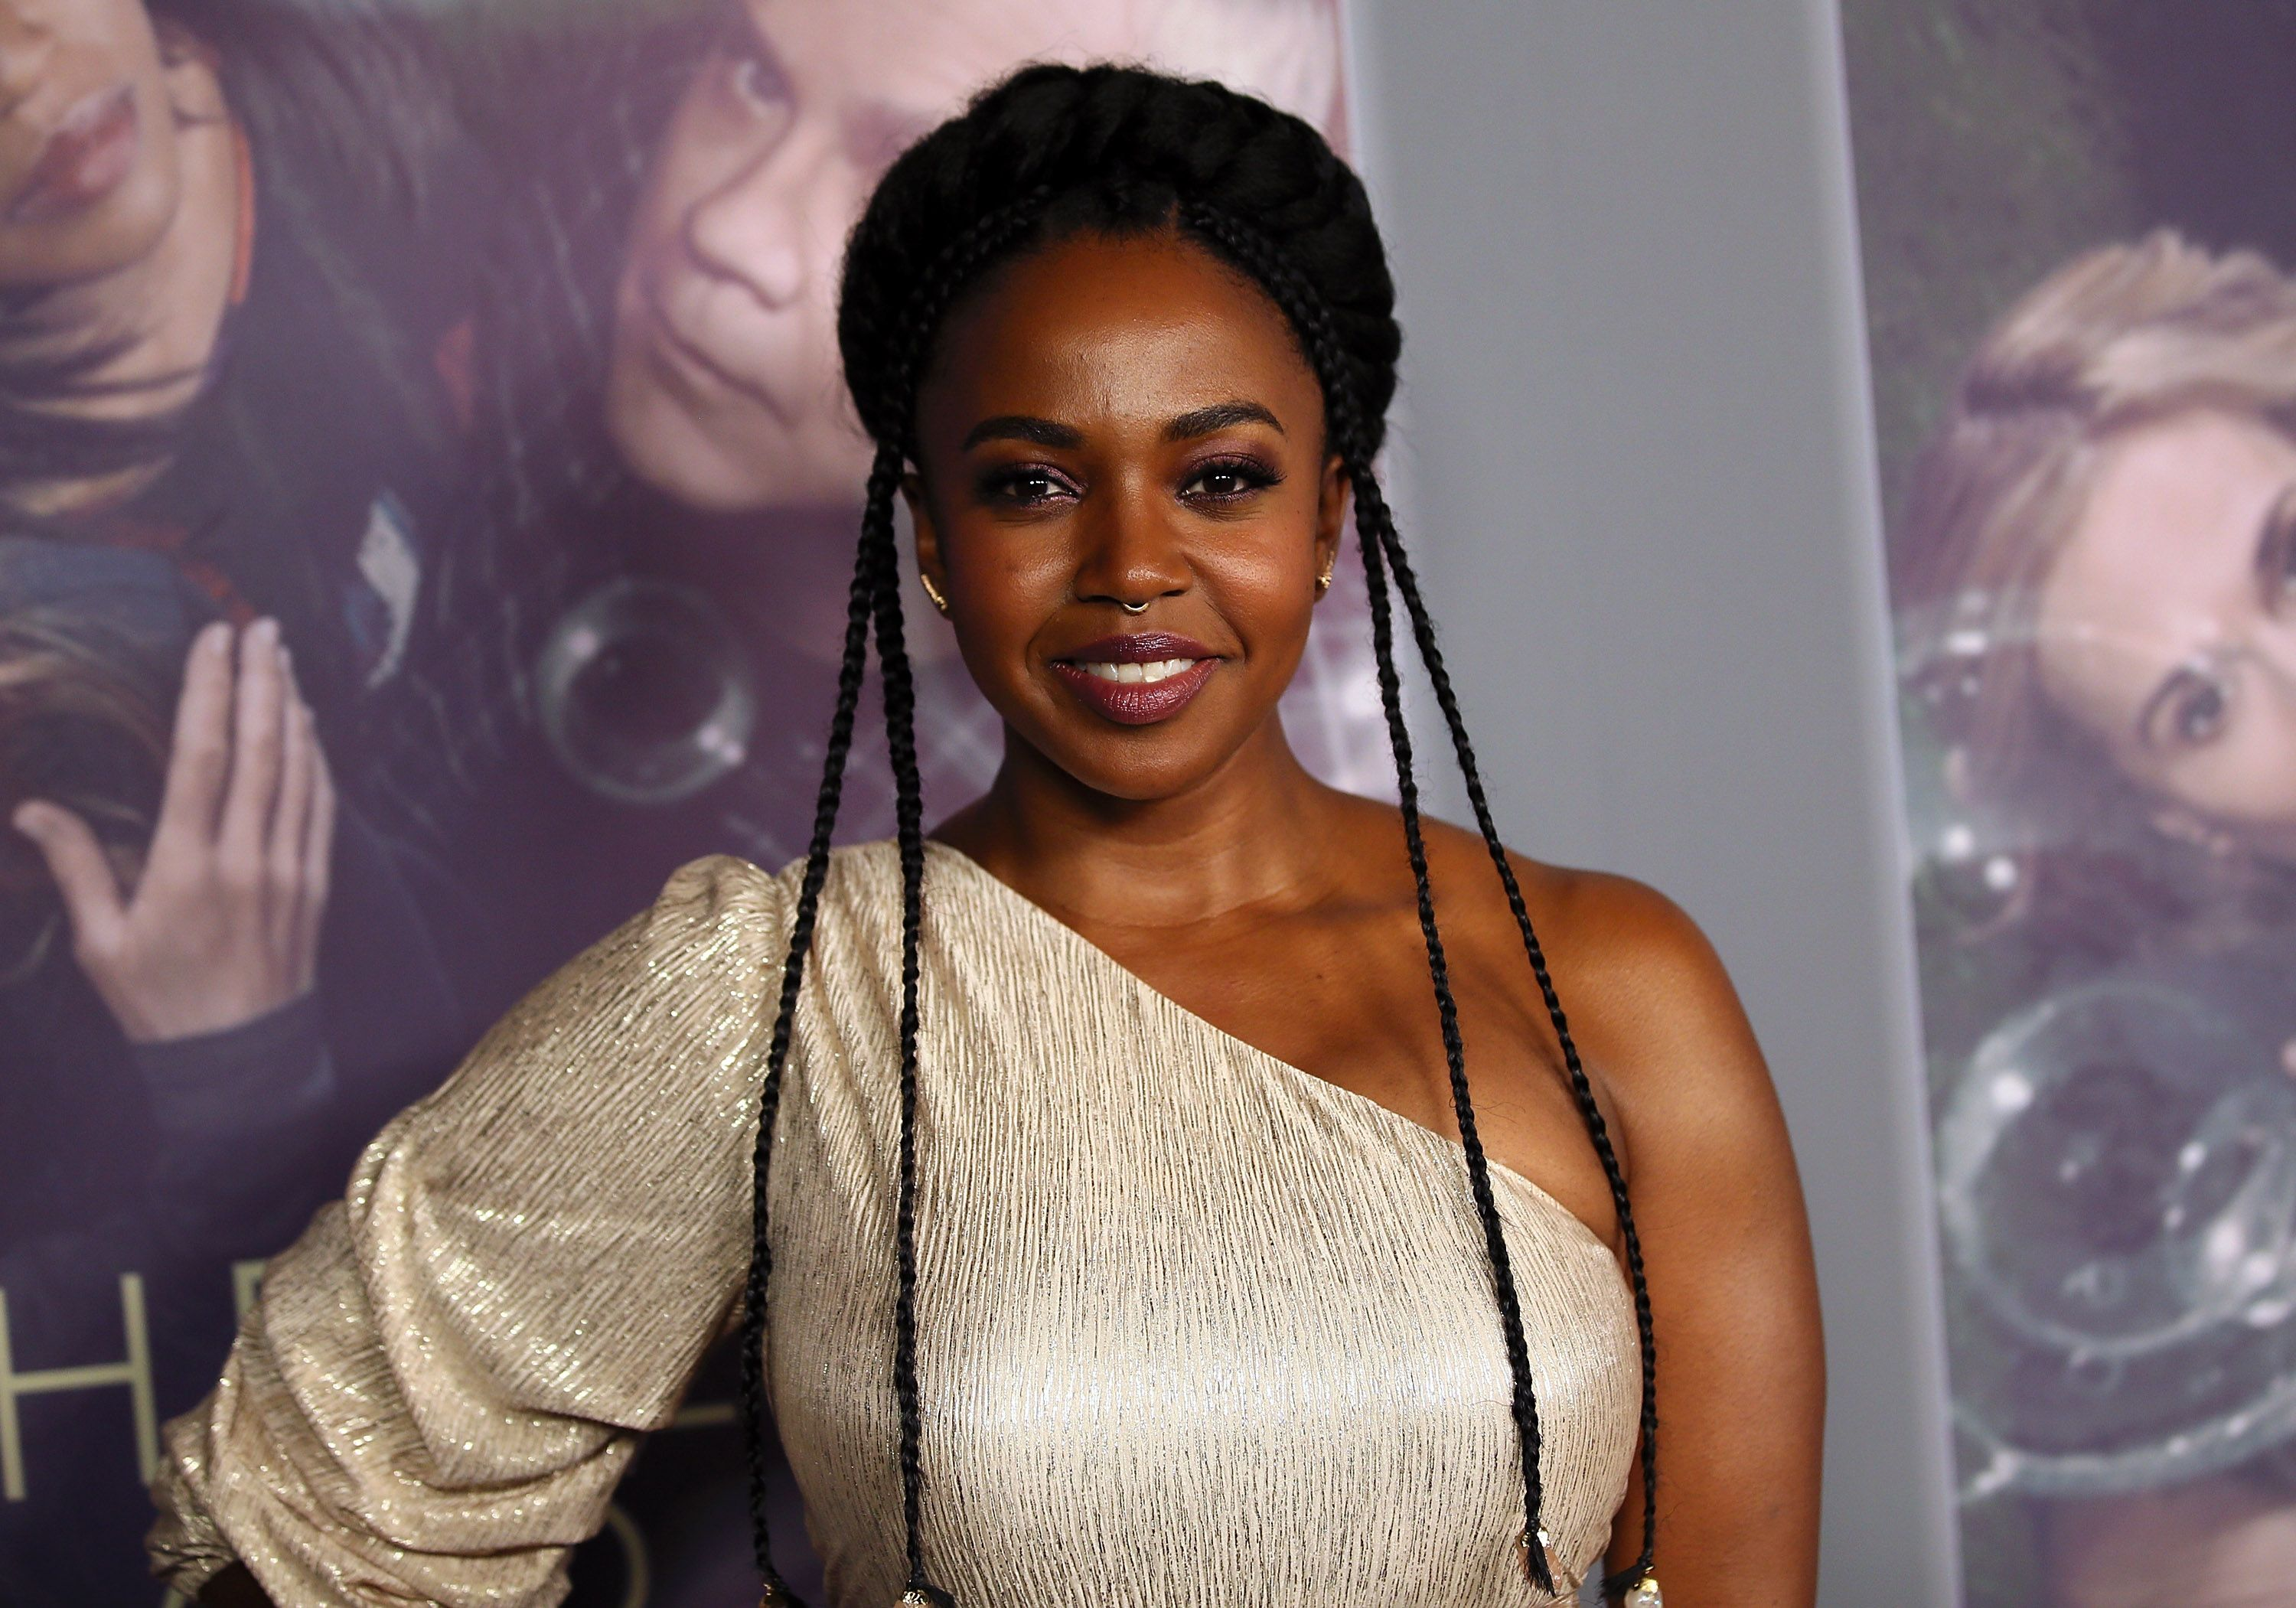 """Jerrika Hinton at the premiere of """"Here and Now"""" in 2018 in Los Angeles   Source: Getty Images"""